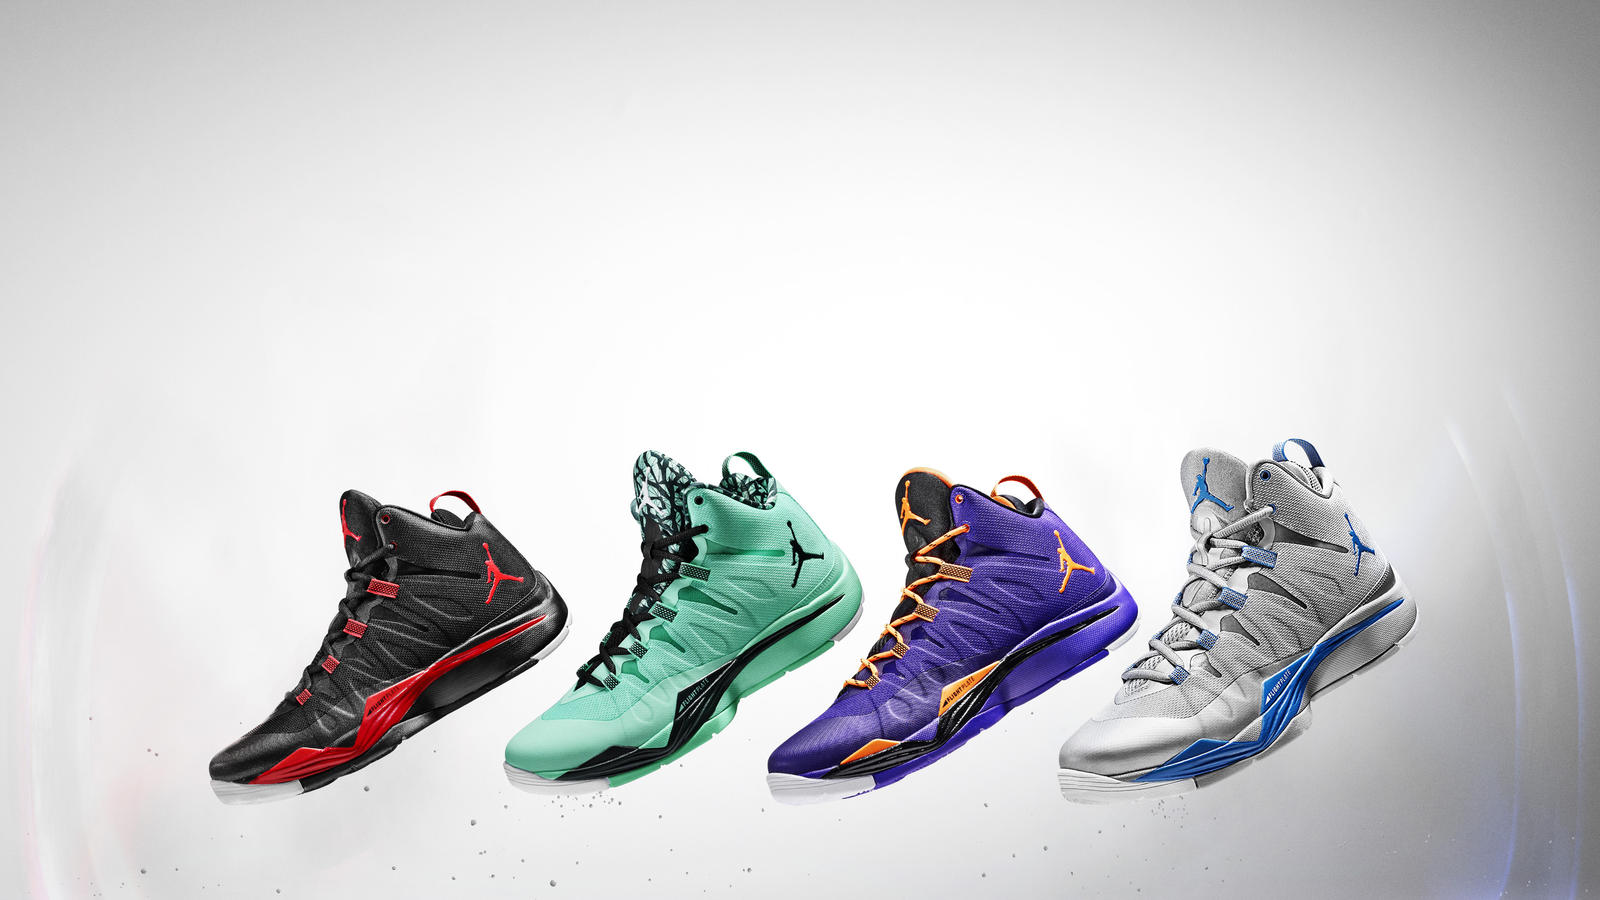 sale retailer 5fef1 023c9 jordan superfly2 group v2. jordan superfly2 grey hero v2.  jordan superfly2 black hero v2. jordan superfly2 jade hero v2.  jordan superfly2 purple hero v2